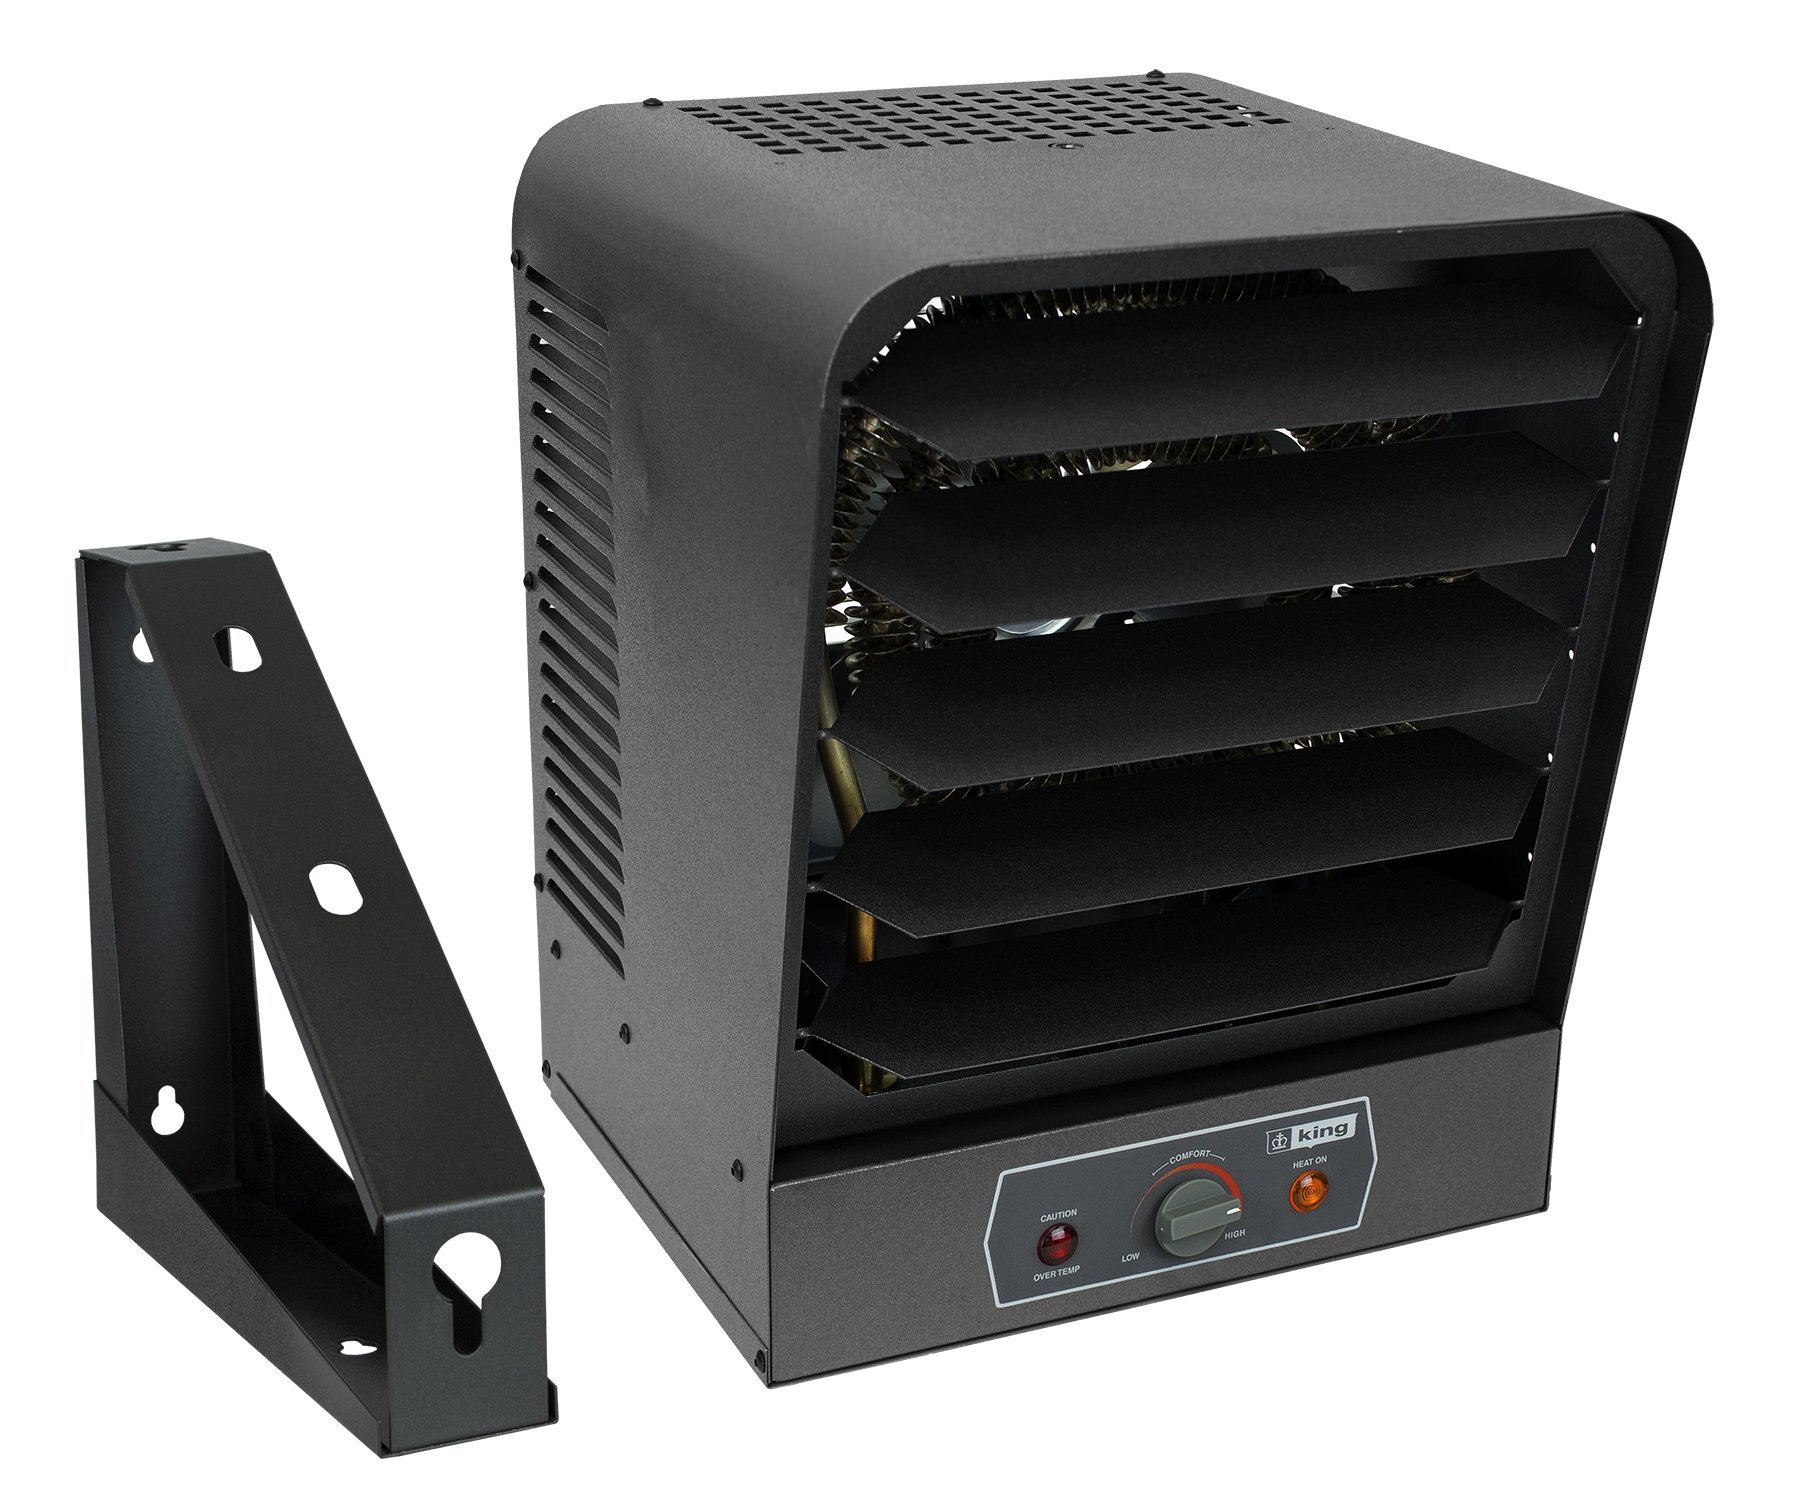 King Electric GH2405TB 240V 5000W Garage Heater with Bracket and Thermostat, Gray by King Electric (Image #2)